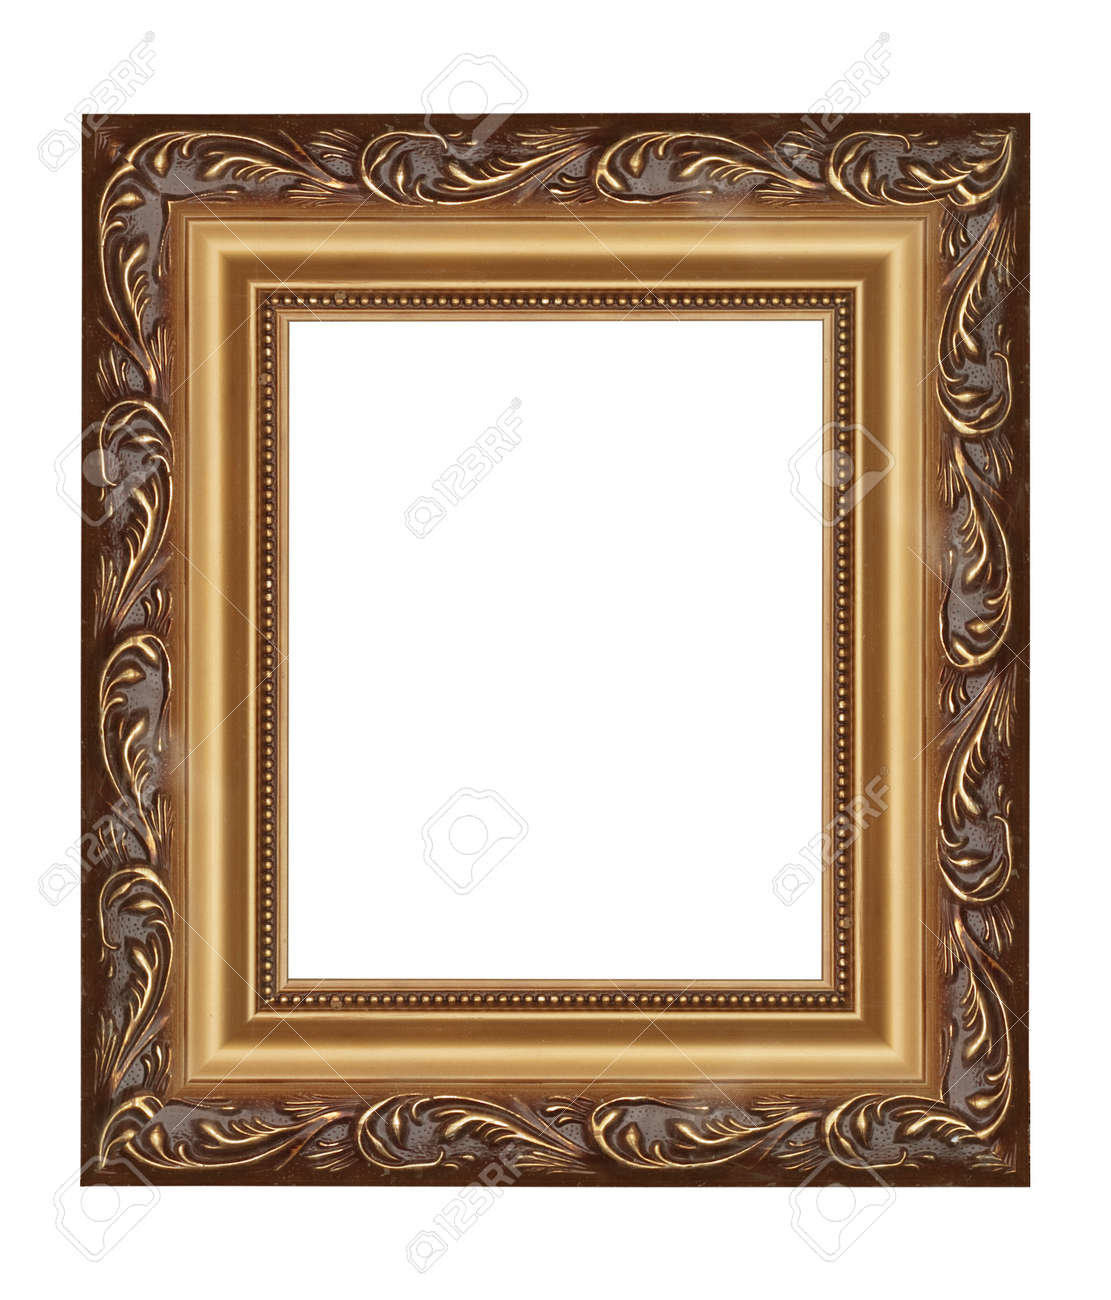 Classy Golden Frame (from My Frames Collection) Stock Photo, Picture ...